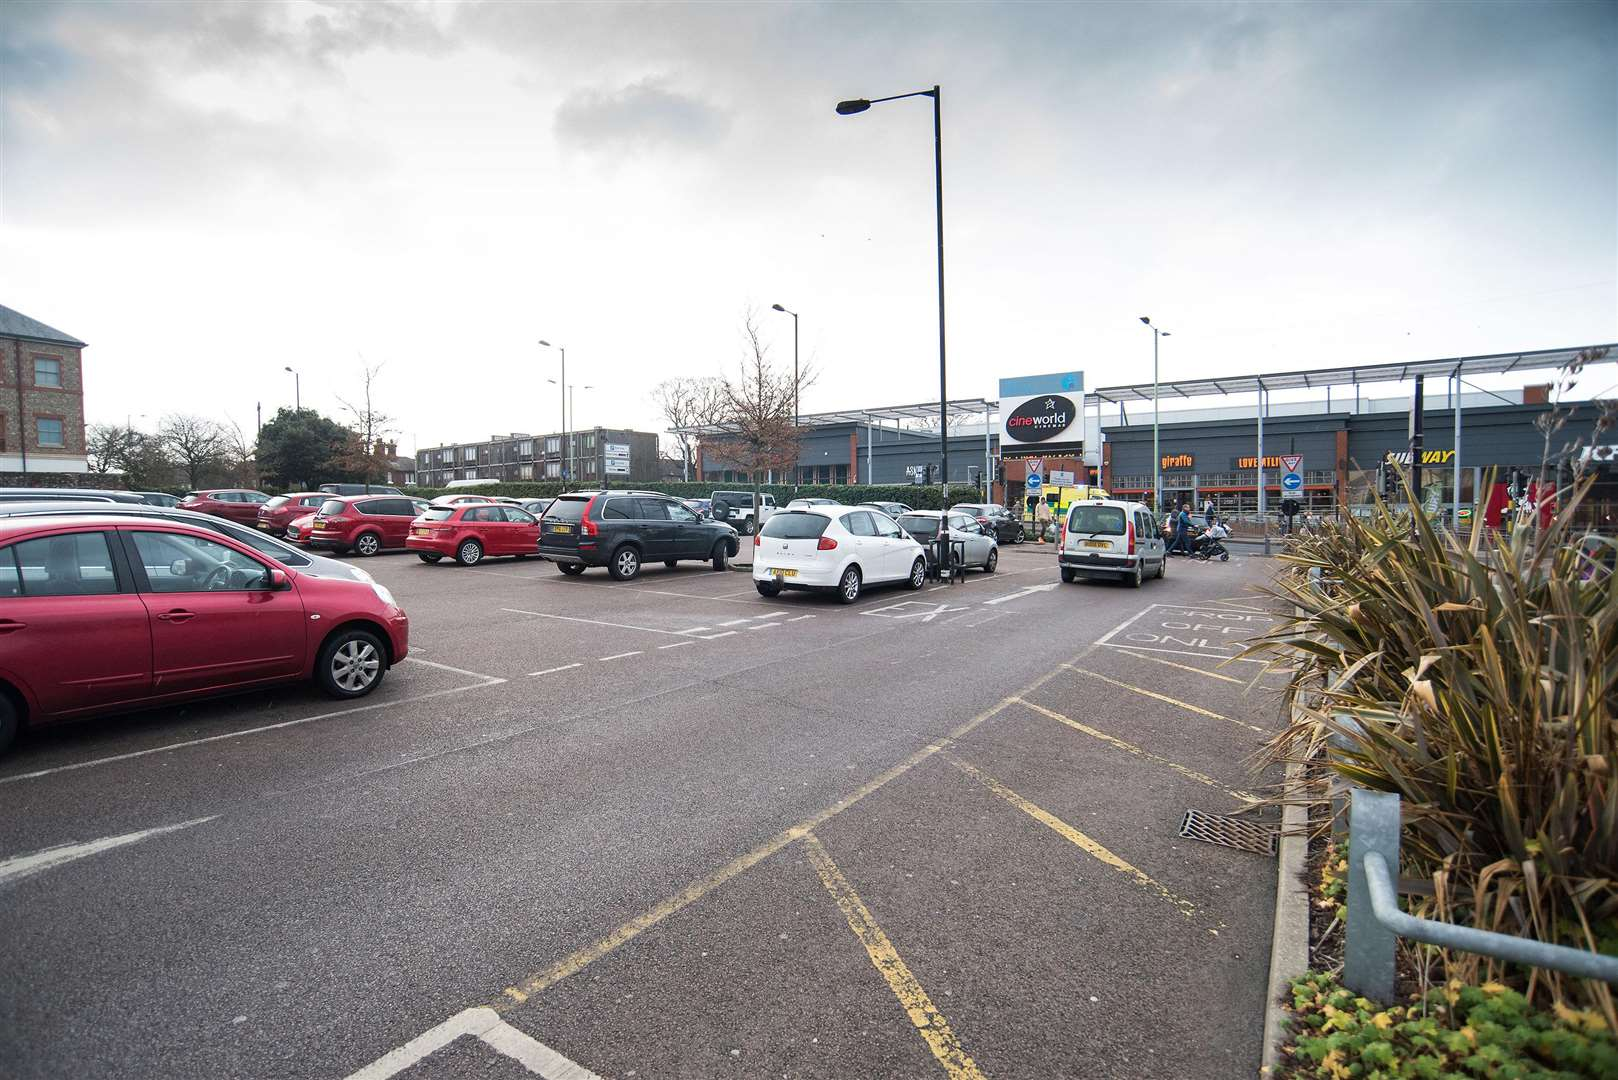 The restricted area includes the arc/Cattle Market car parks and Parkway multi-storey. Picture: Mark Westley.